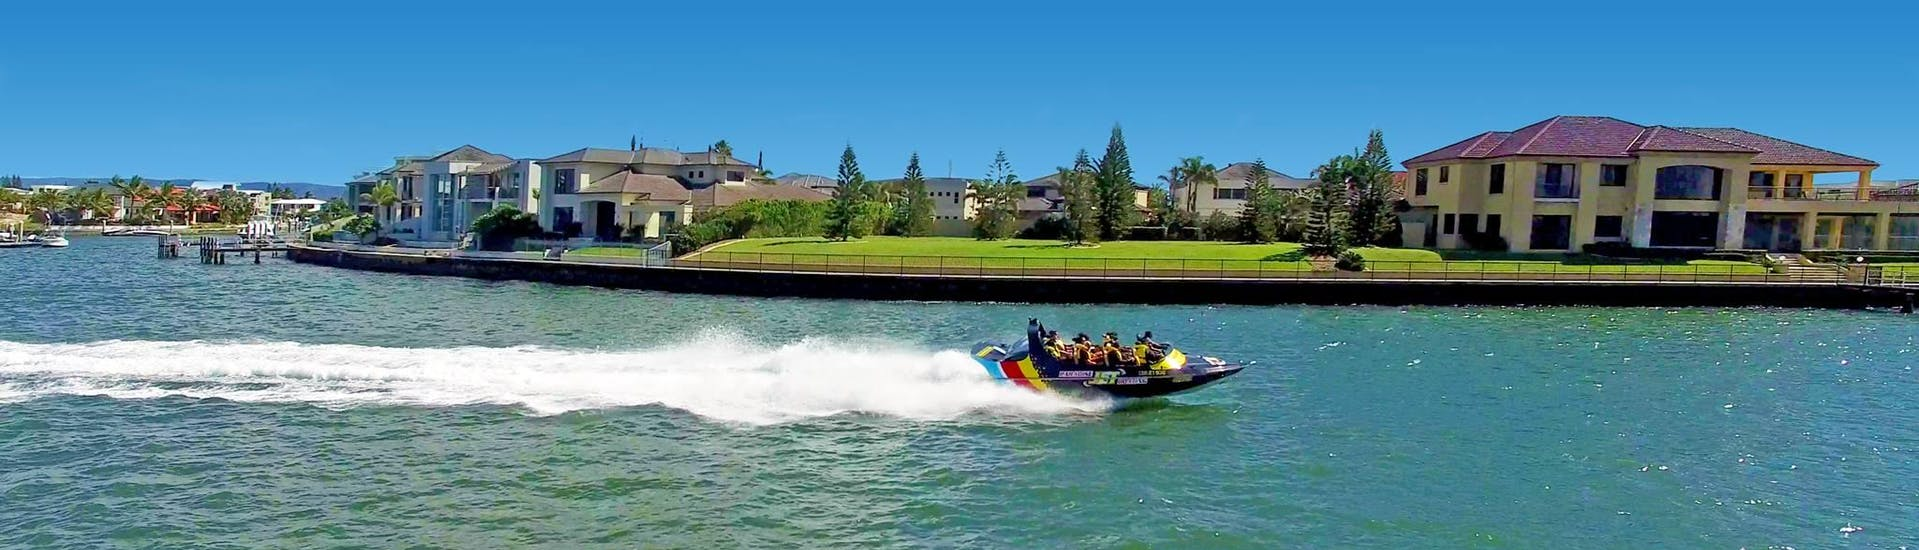 Cruising on the river during Tour in a Jet Boat on the Gold Coast - Surfers Paradise organized by Paradise Jet Boating Gold Coast